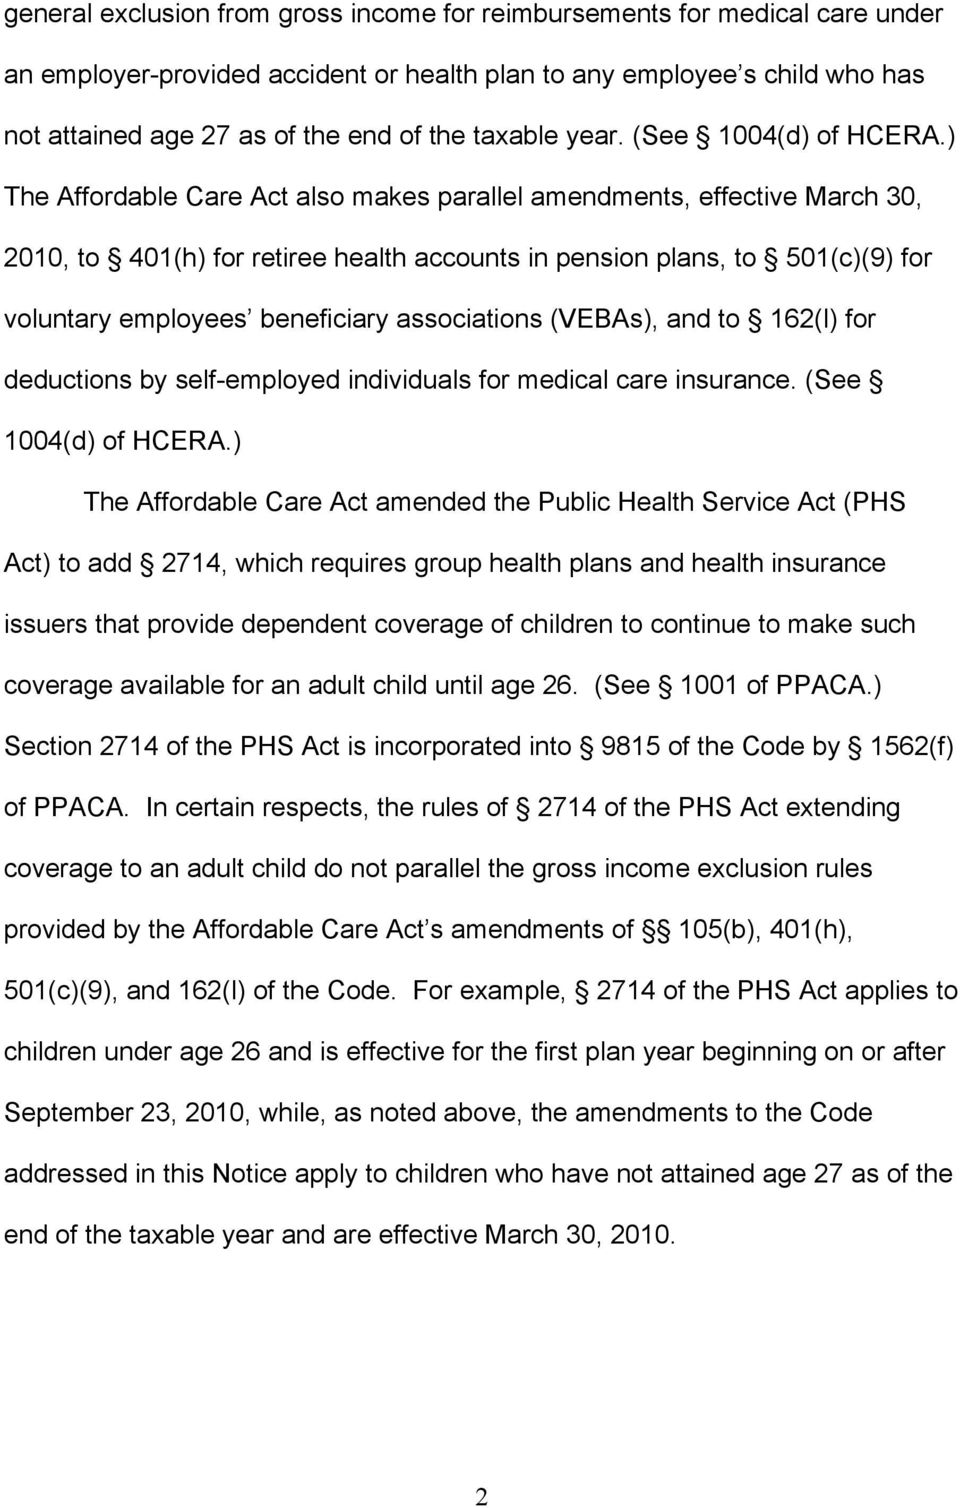 ) The Affordable Care Act also makes parallel amendments, effective March 30, 2010, to 401(h) for retiree health accounts in pension plans, to 501(c)(9) for voluntary employees beneficiary